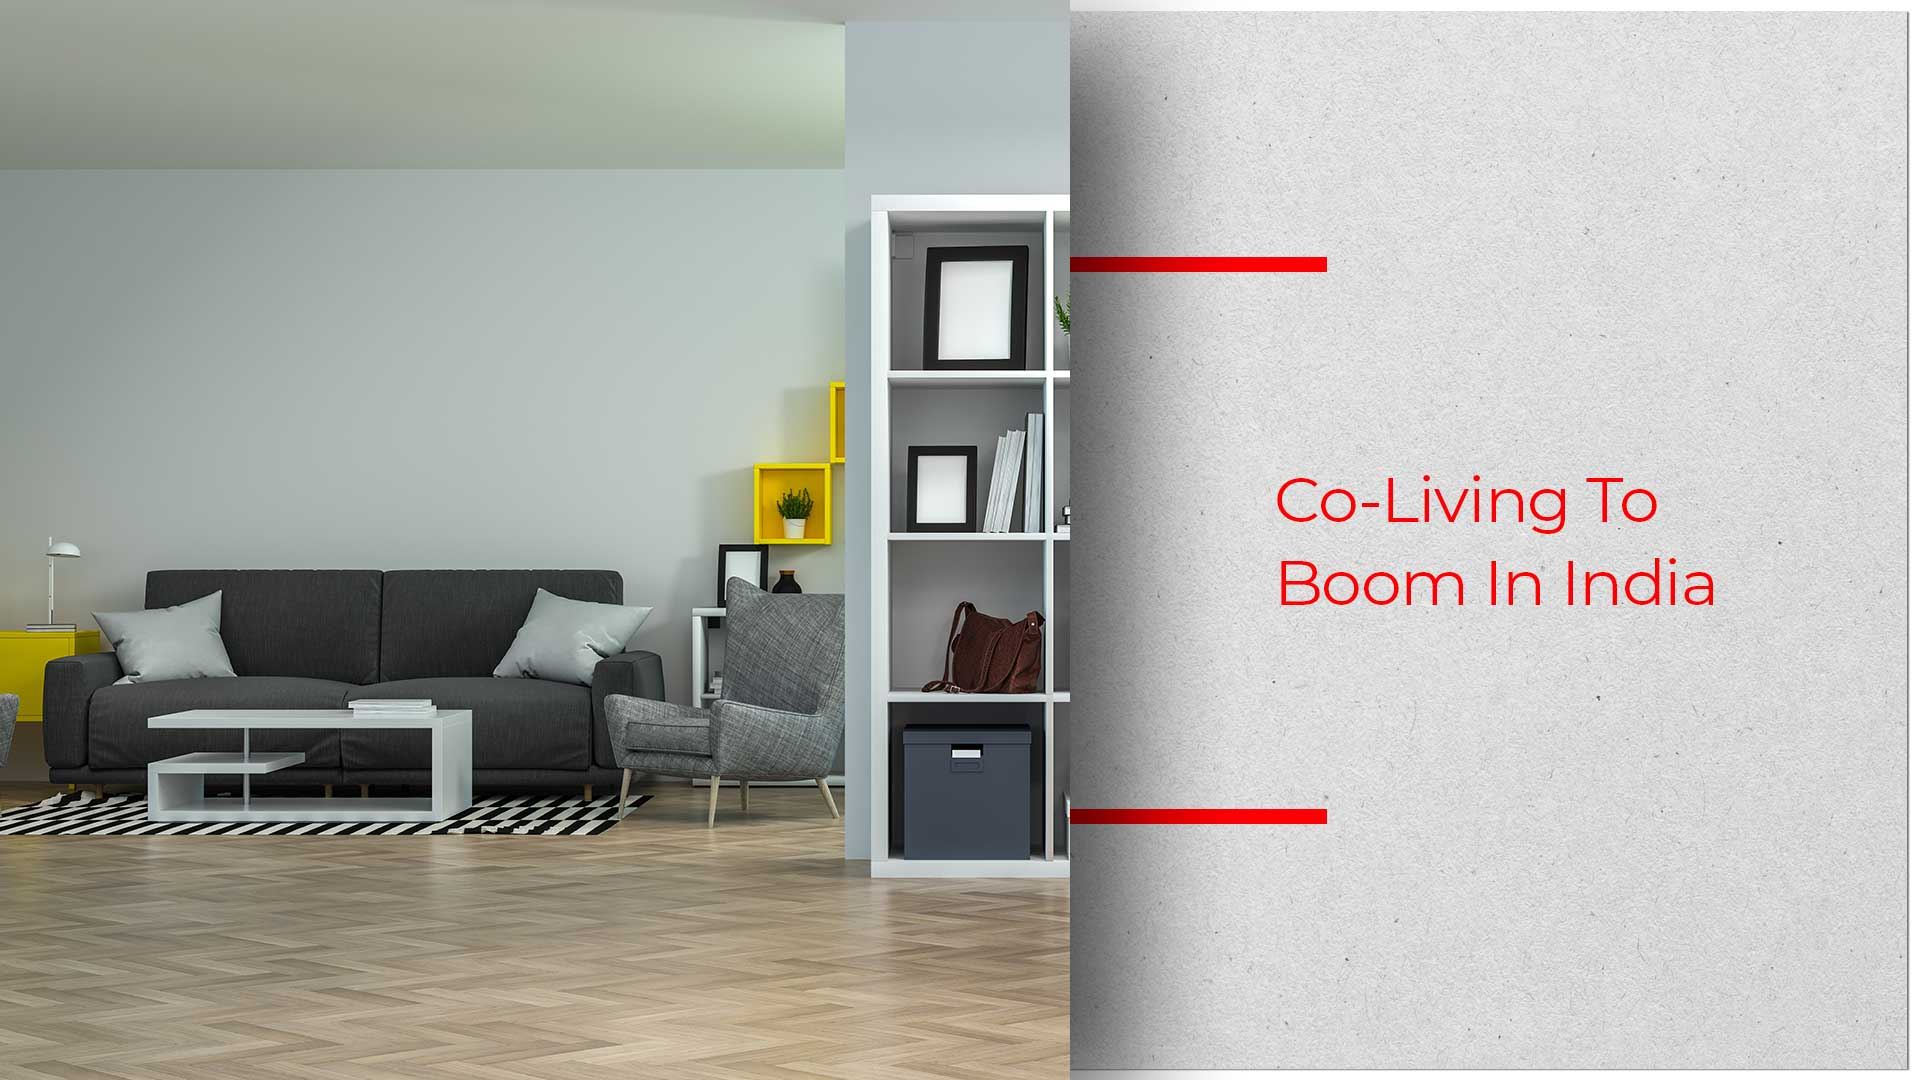 Co-Living Industry Has A Promising Future In India